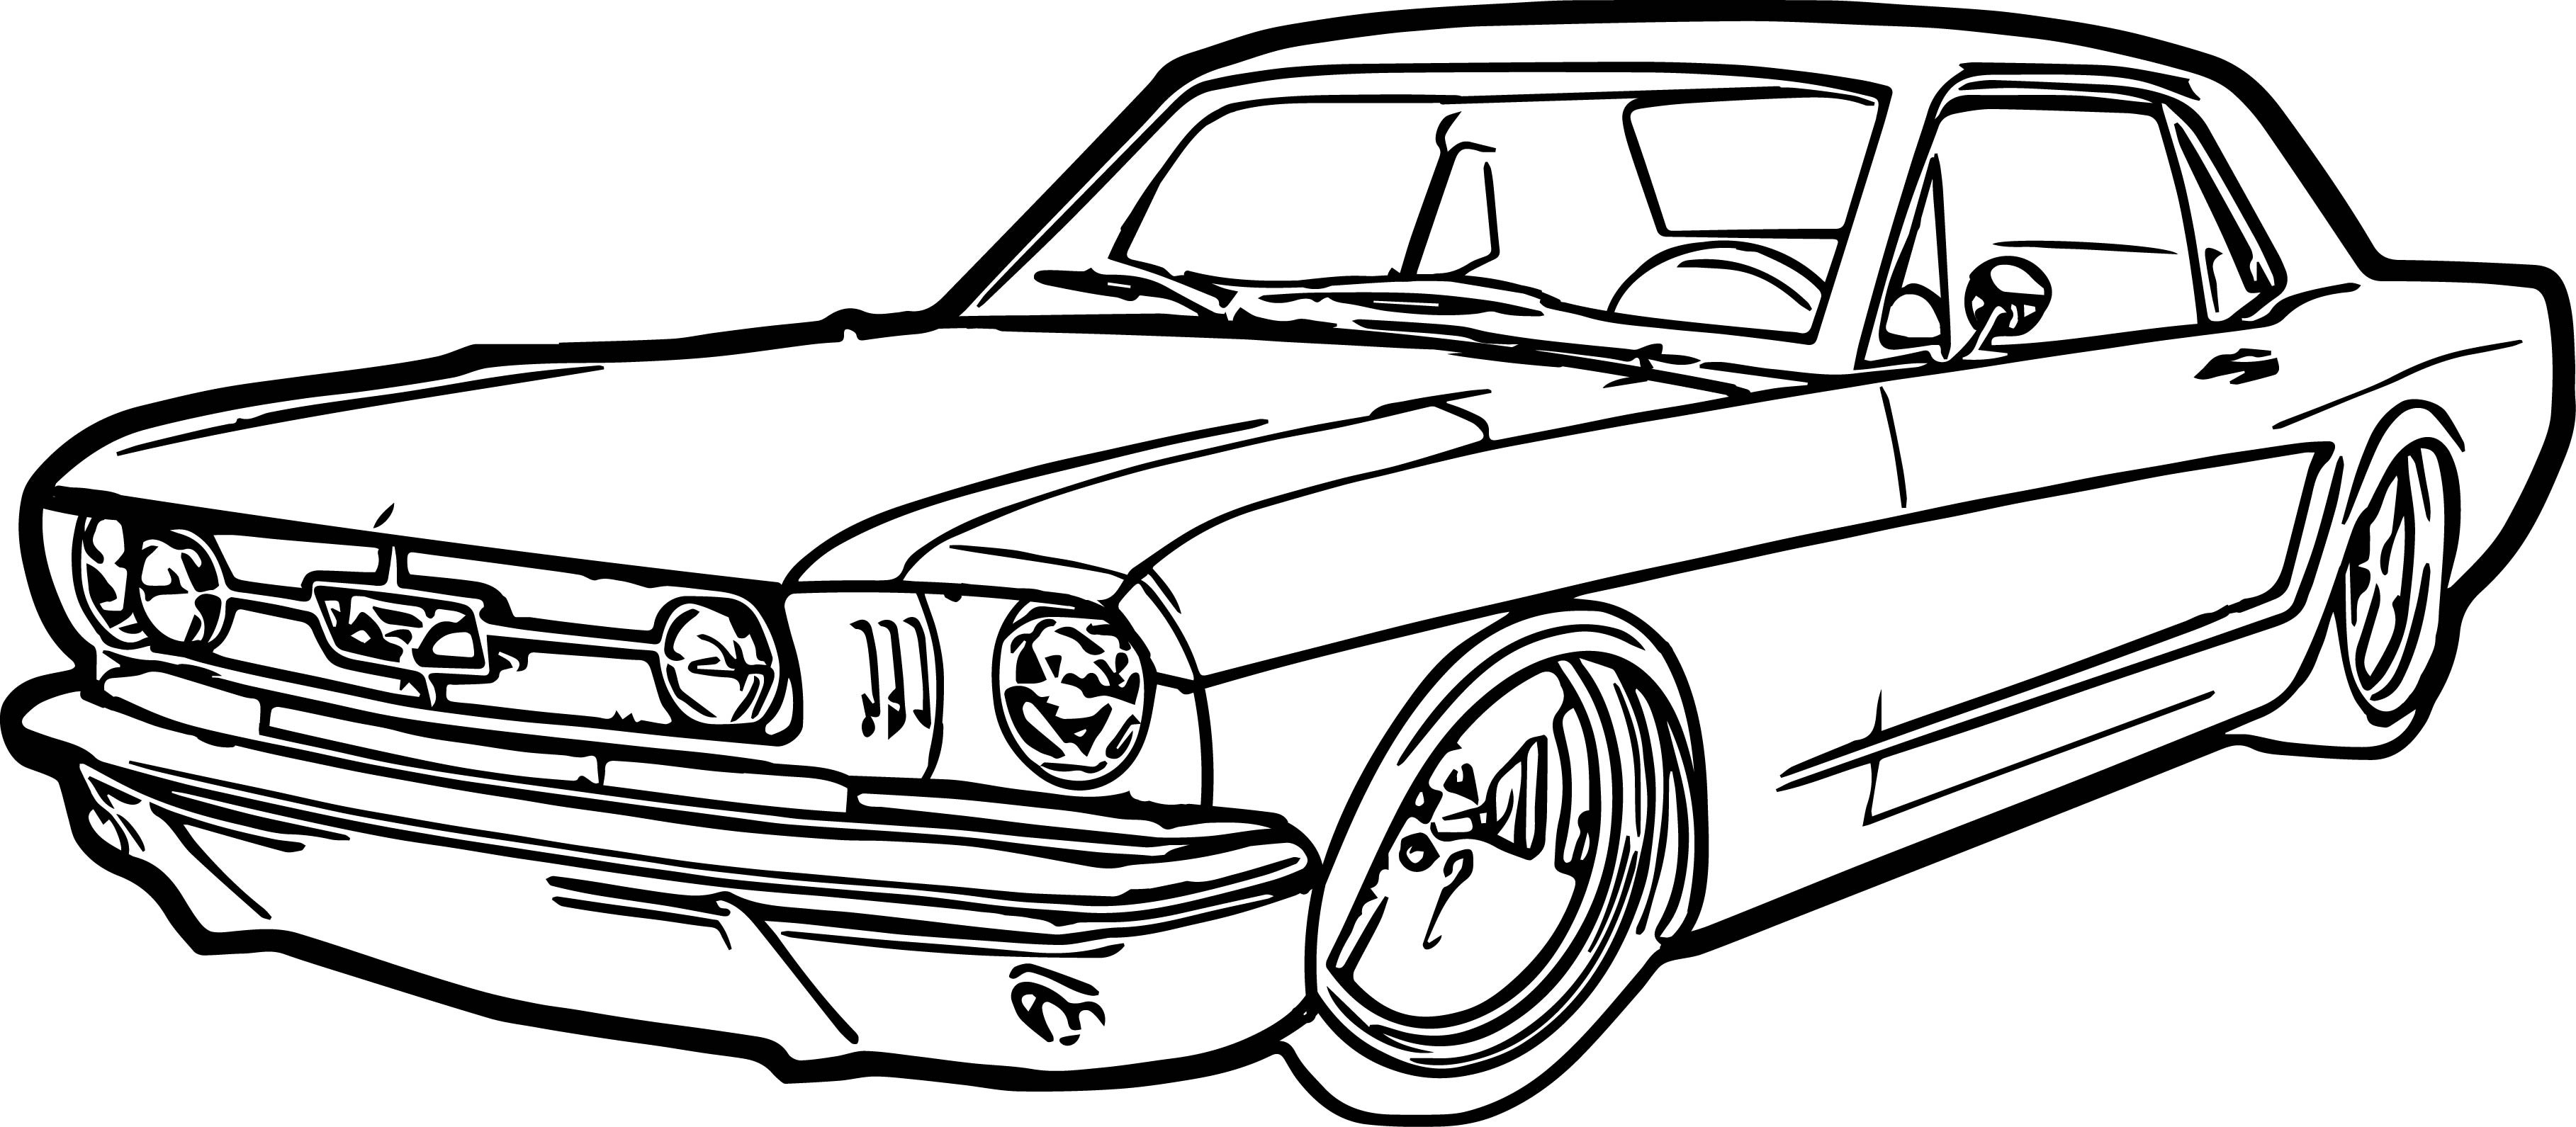 Hot Rod Coloring Pages to Print - Coloring Books and Pages Simple Hot Rod Coloring Pages Pinterest Printable